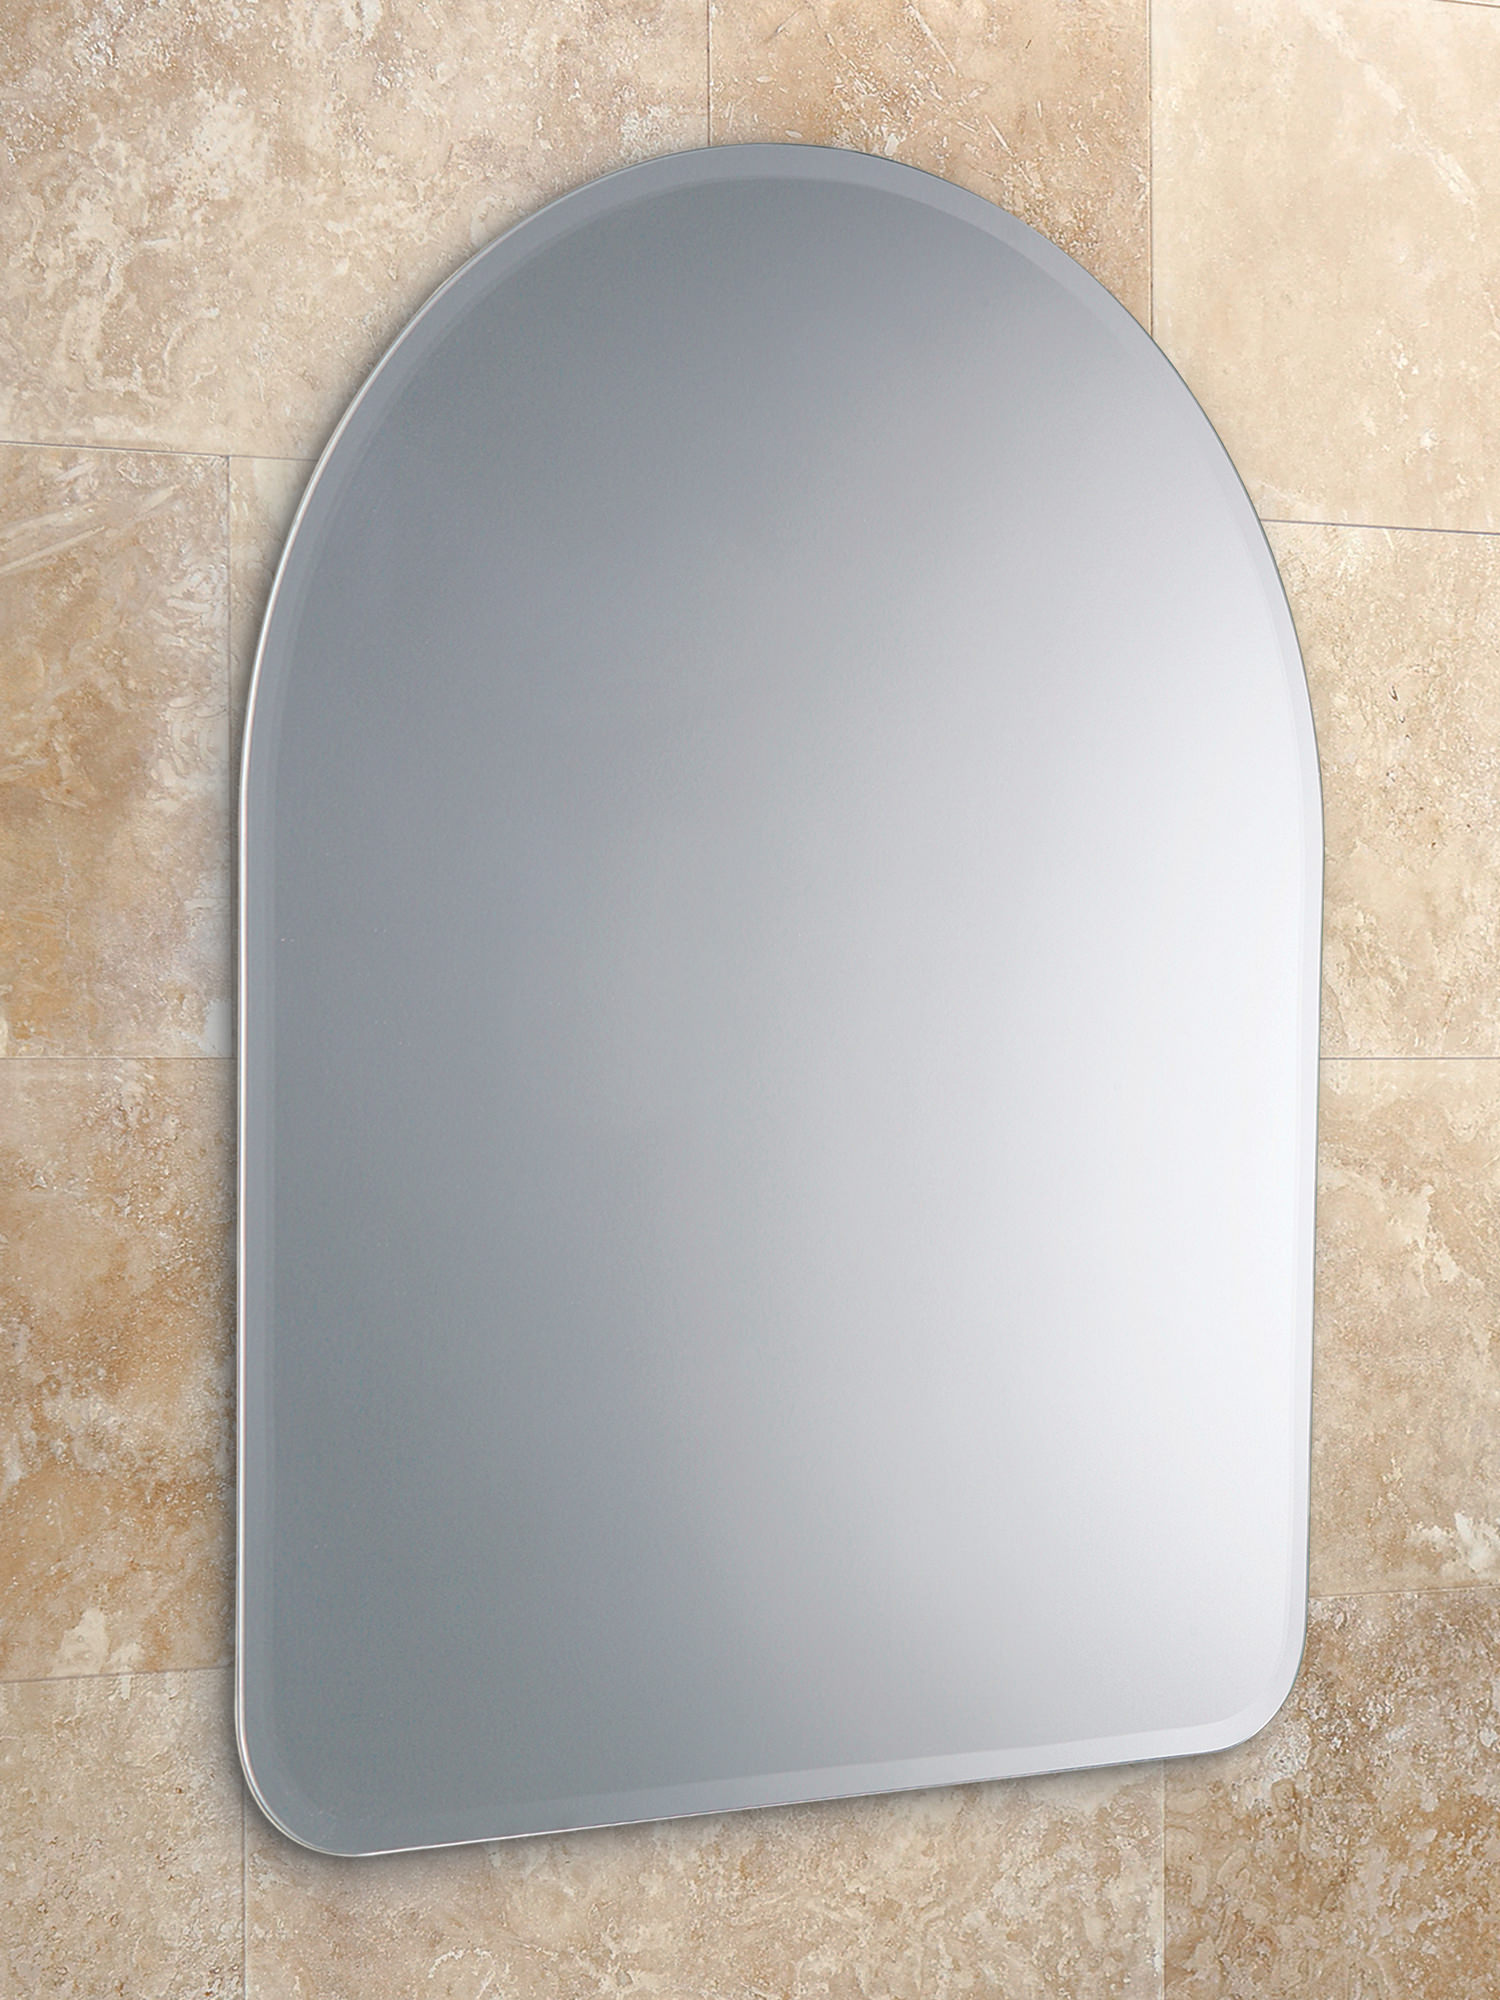 Hib tara arched mirror with narrow bevelled edges 61883000 for Narrow mirror